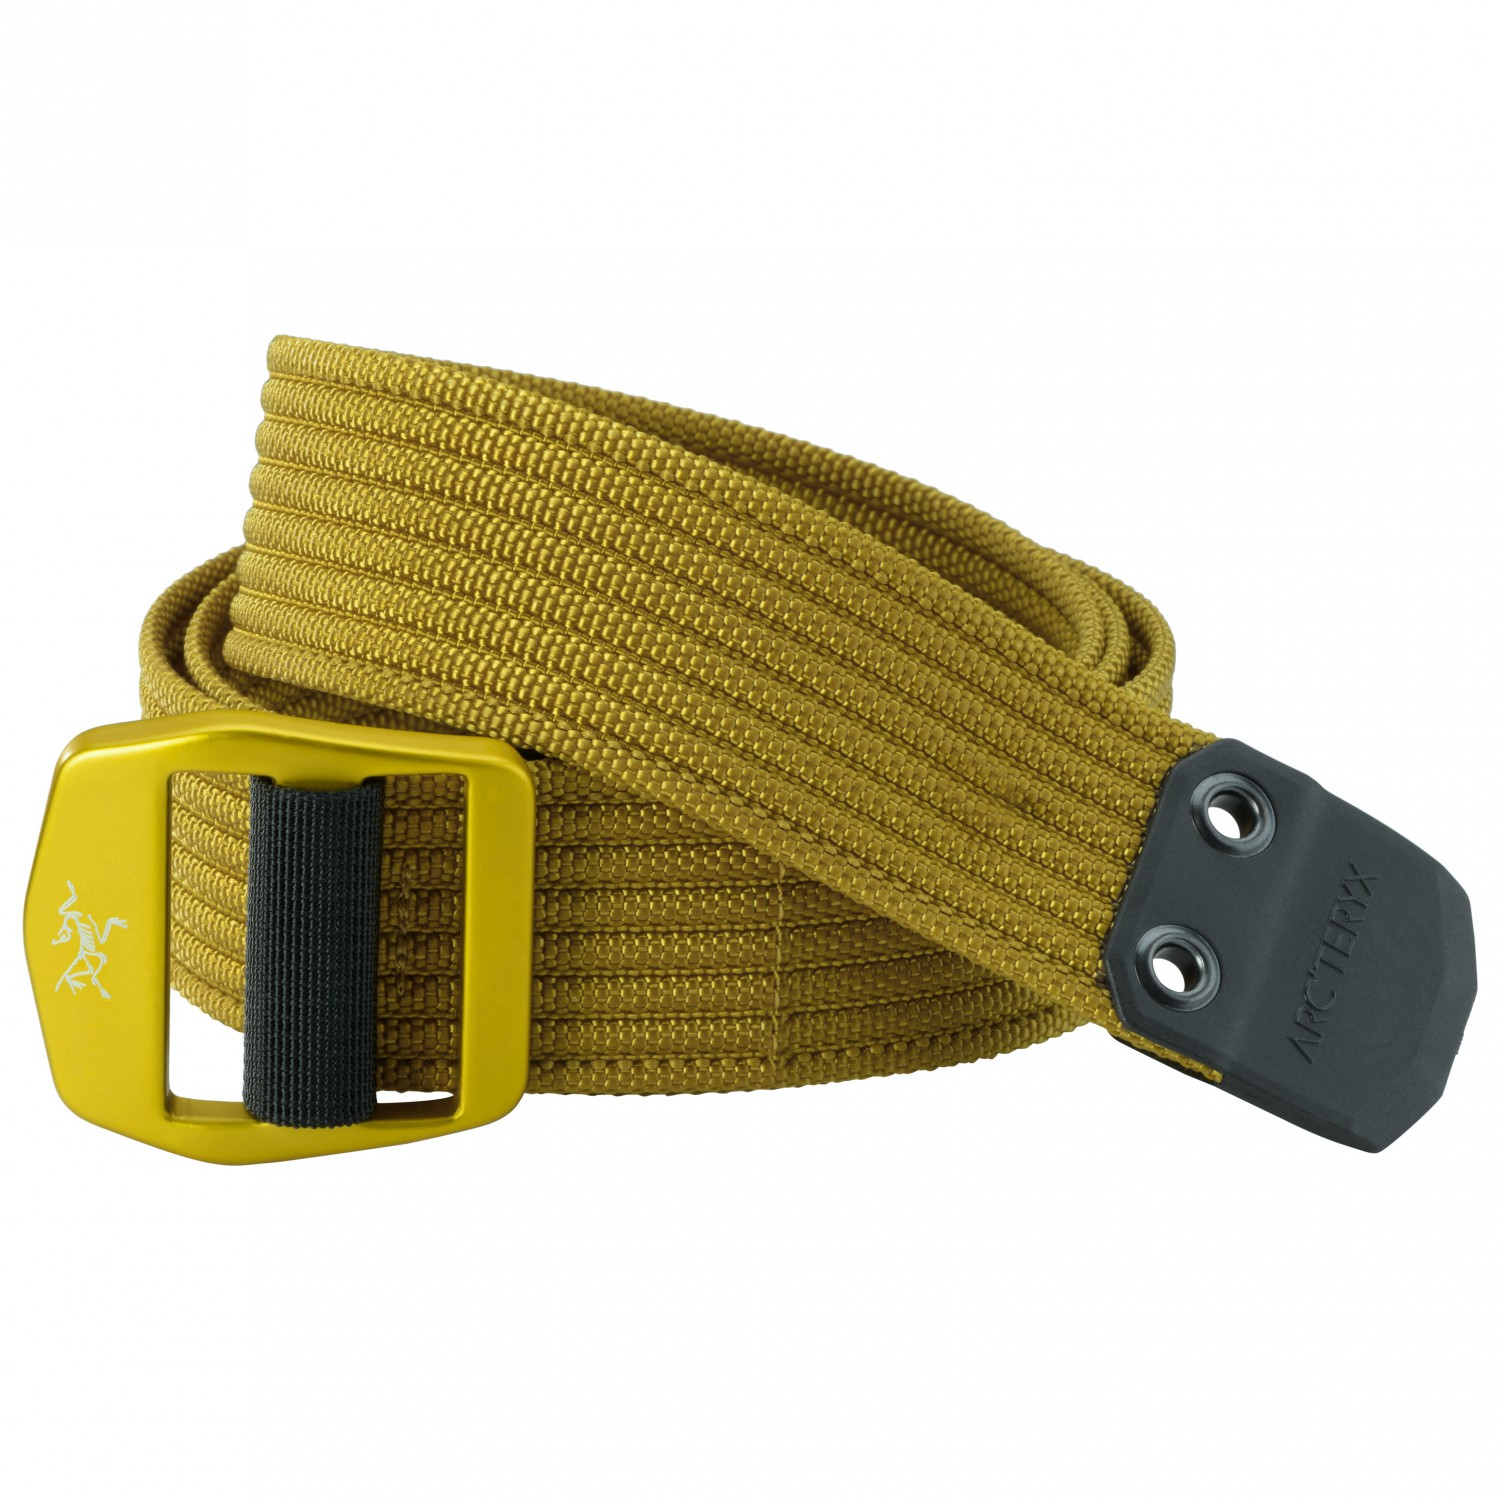 ecb3bb5e76 Arc'teryx Conveyor Belt - Belt | Buy online | Bergfreunde.eu